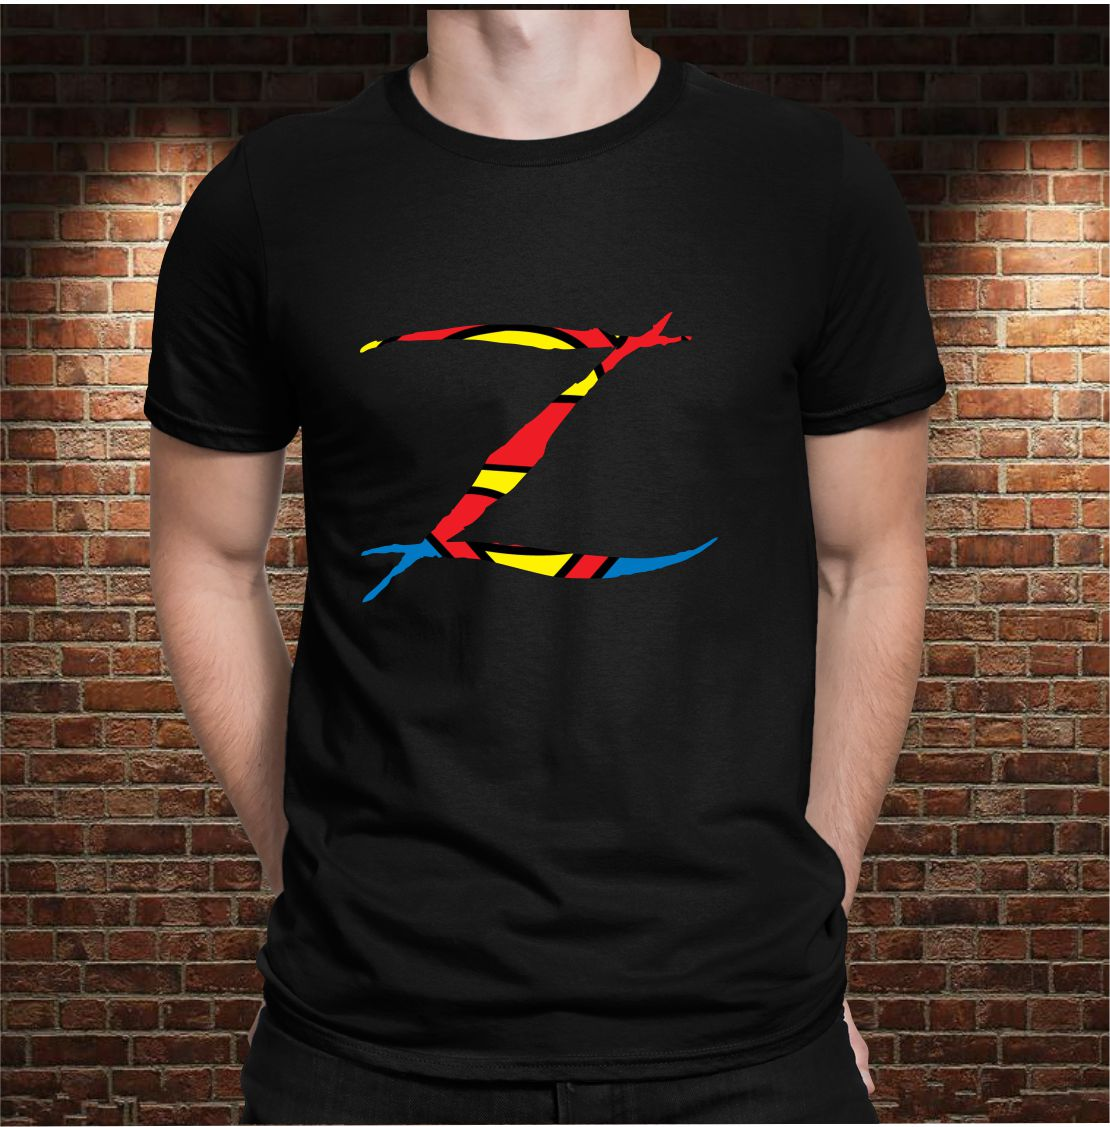 CAMISETA ZUPERMAN